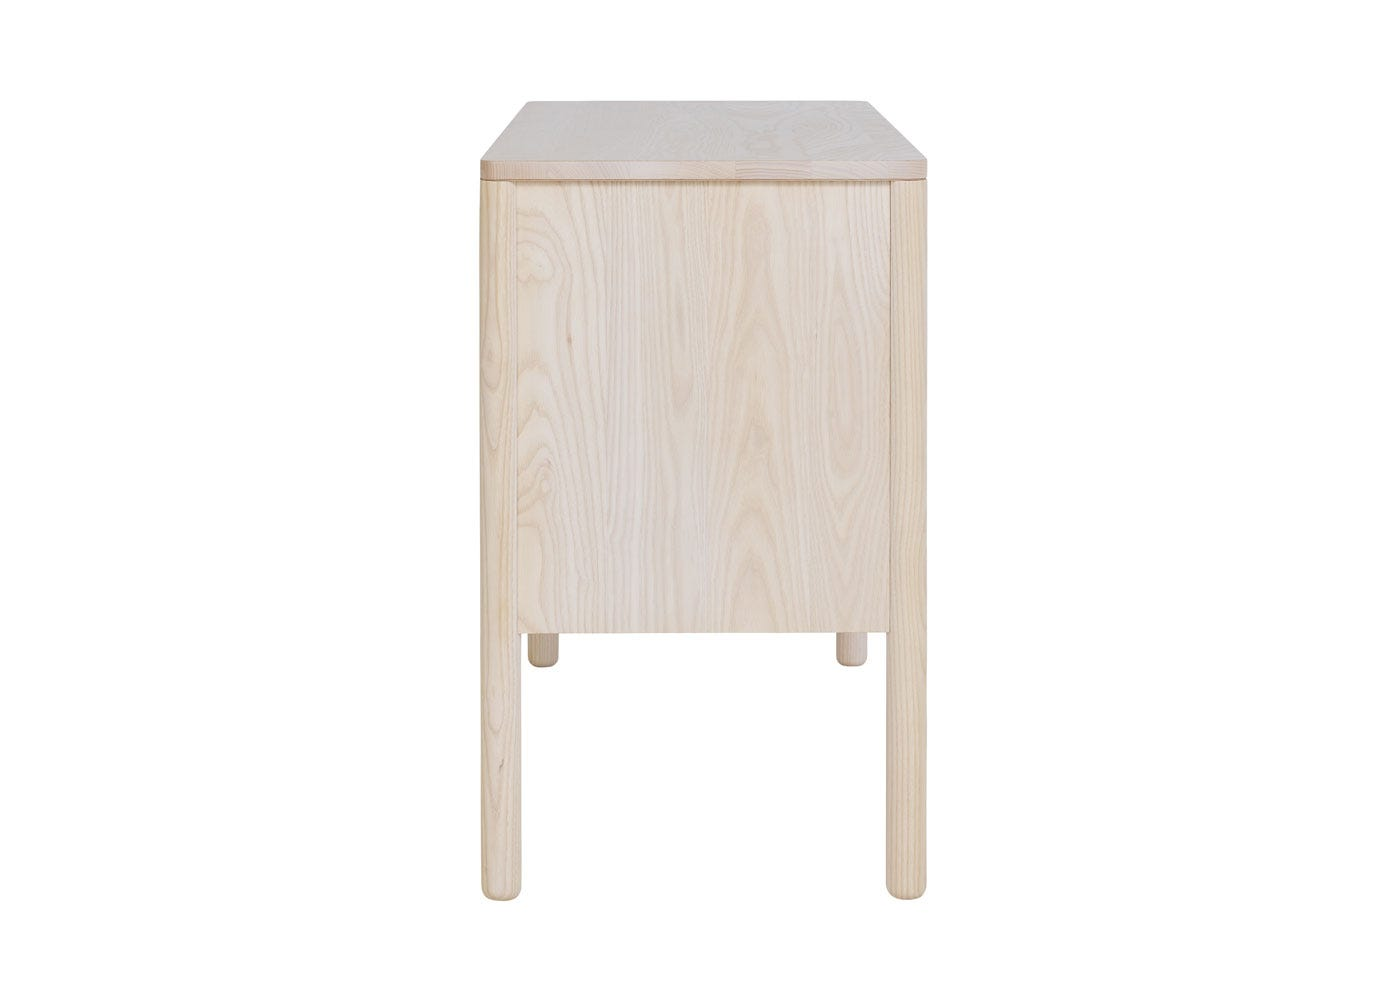 As shown: Verso Sideboard Small Whitened Ash - Side profile.